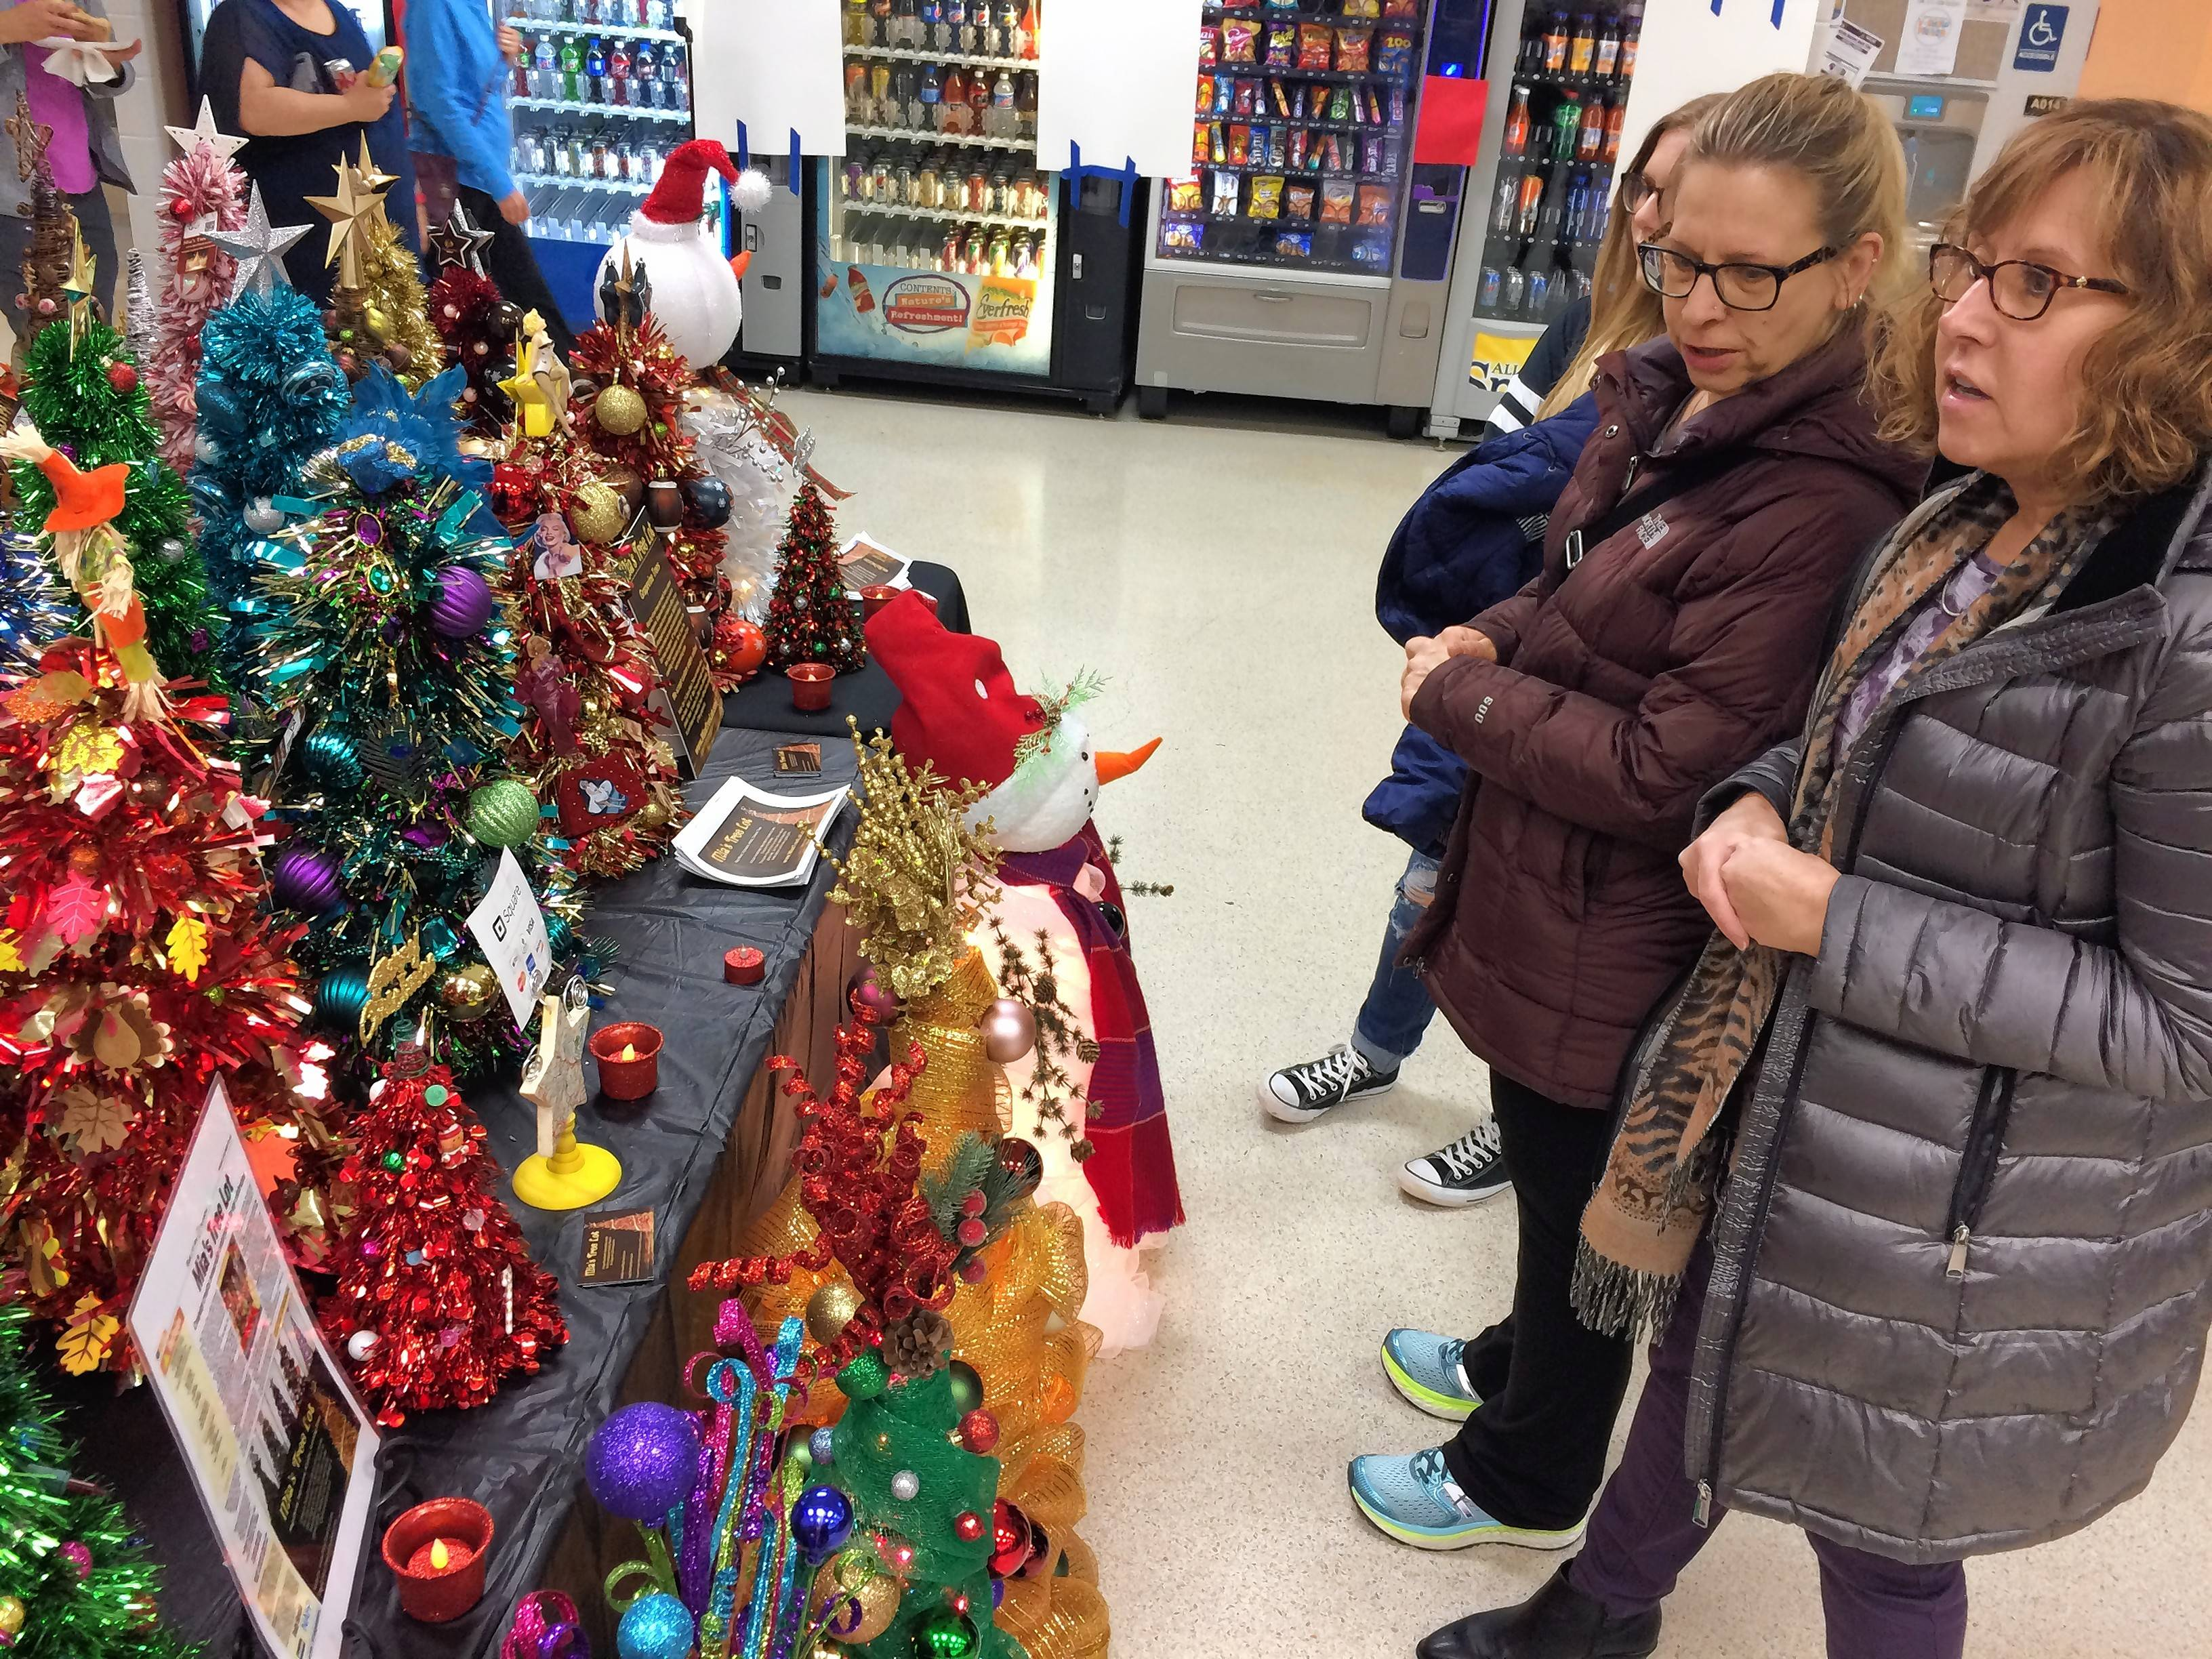 Sue Labbe, left, and Beth Avandado check out a display of tabletop artificial Christmas trees from an Oswego business called Mia's Tree Lot on Saturday at Rolling Meadows High School. The school's athletic booster club held a craft fair.